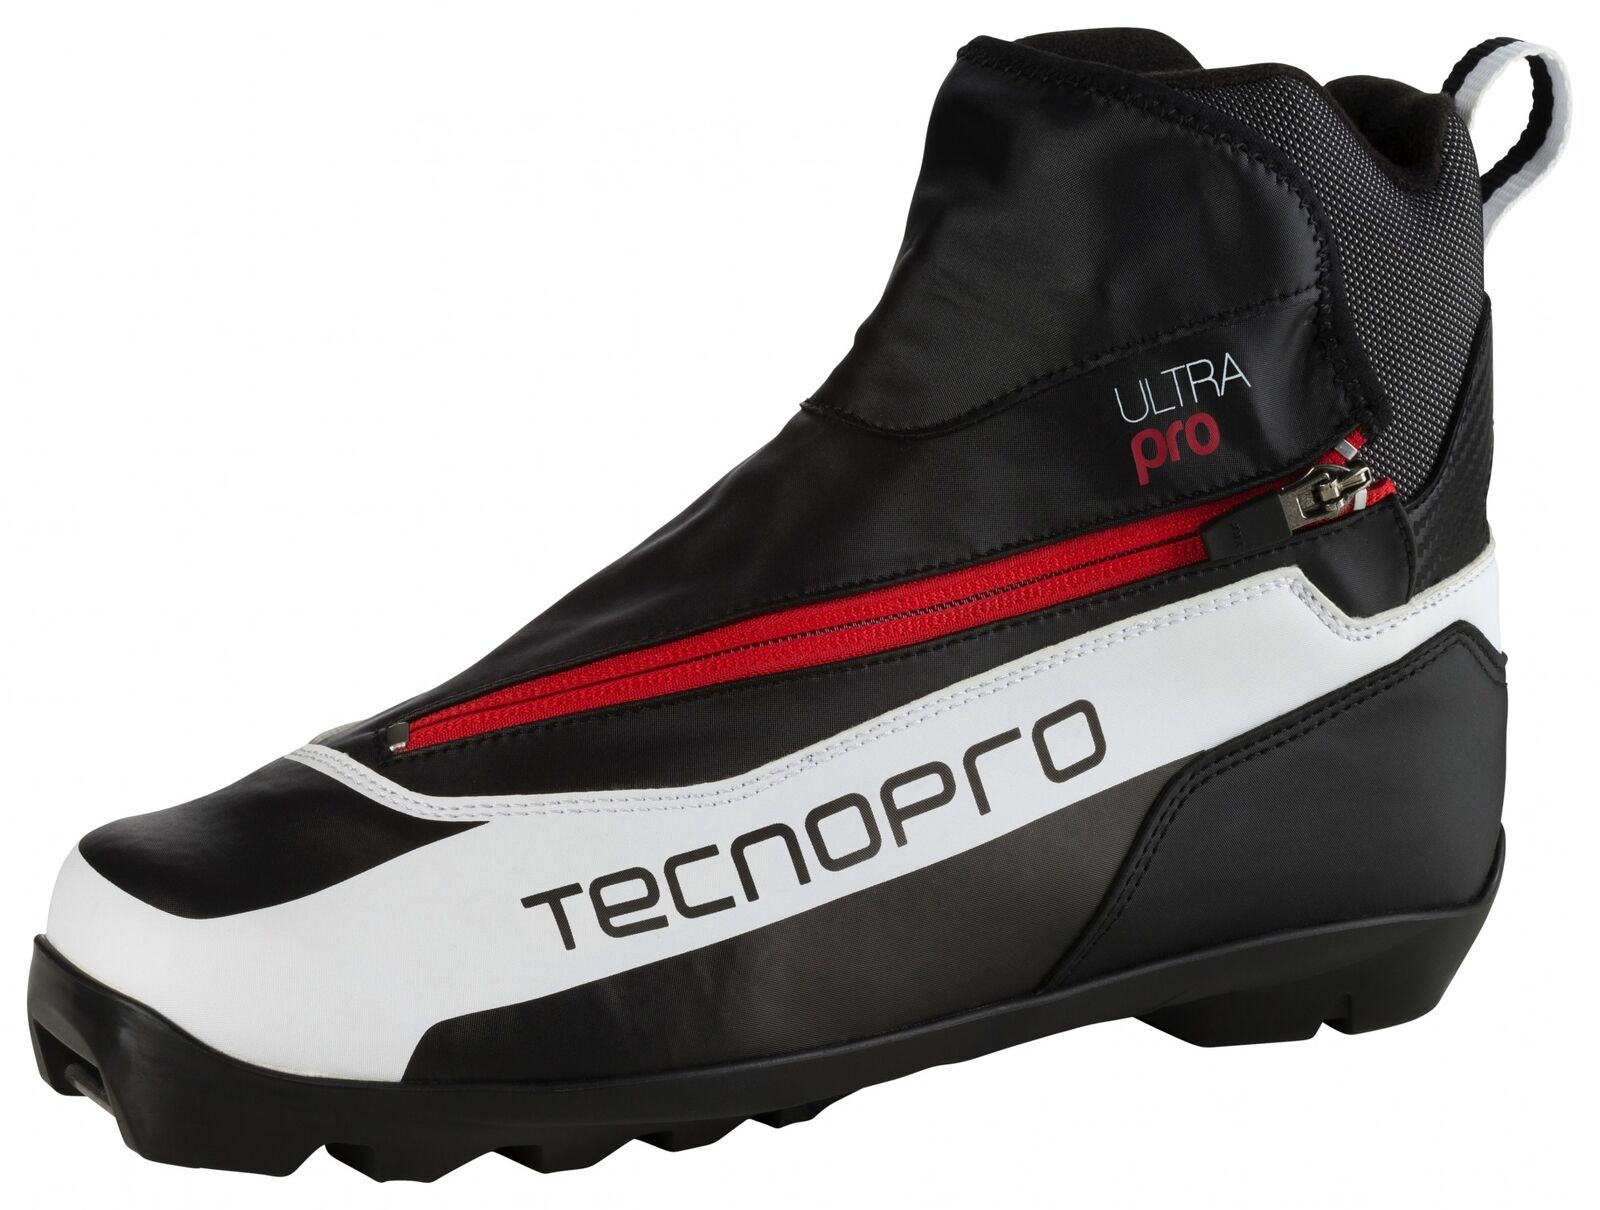 Tecnopro Ll - shoes Ultra pro Men's shoes cross Country shoes Ski shoes Trainers